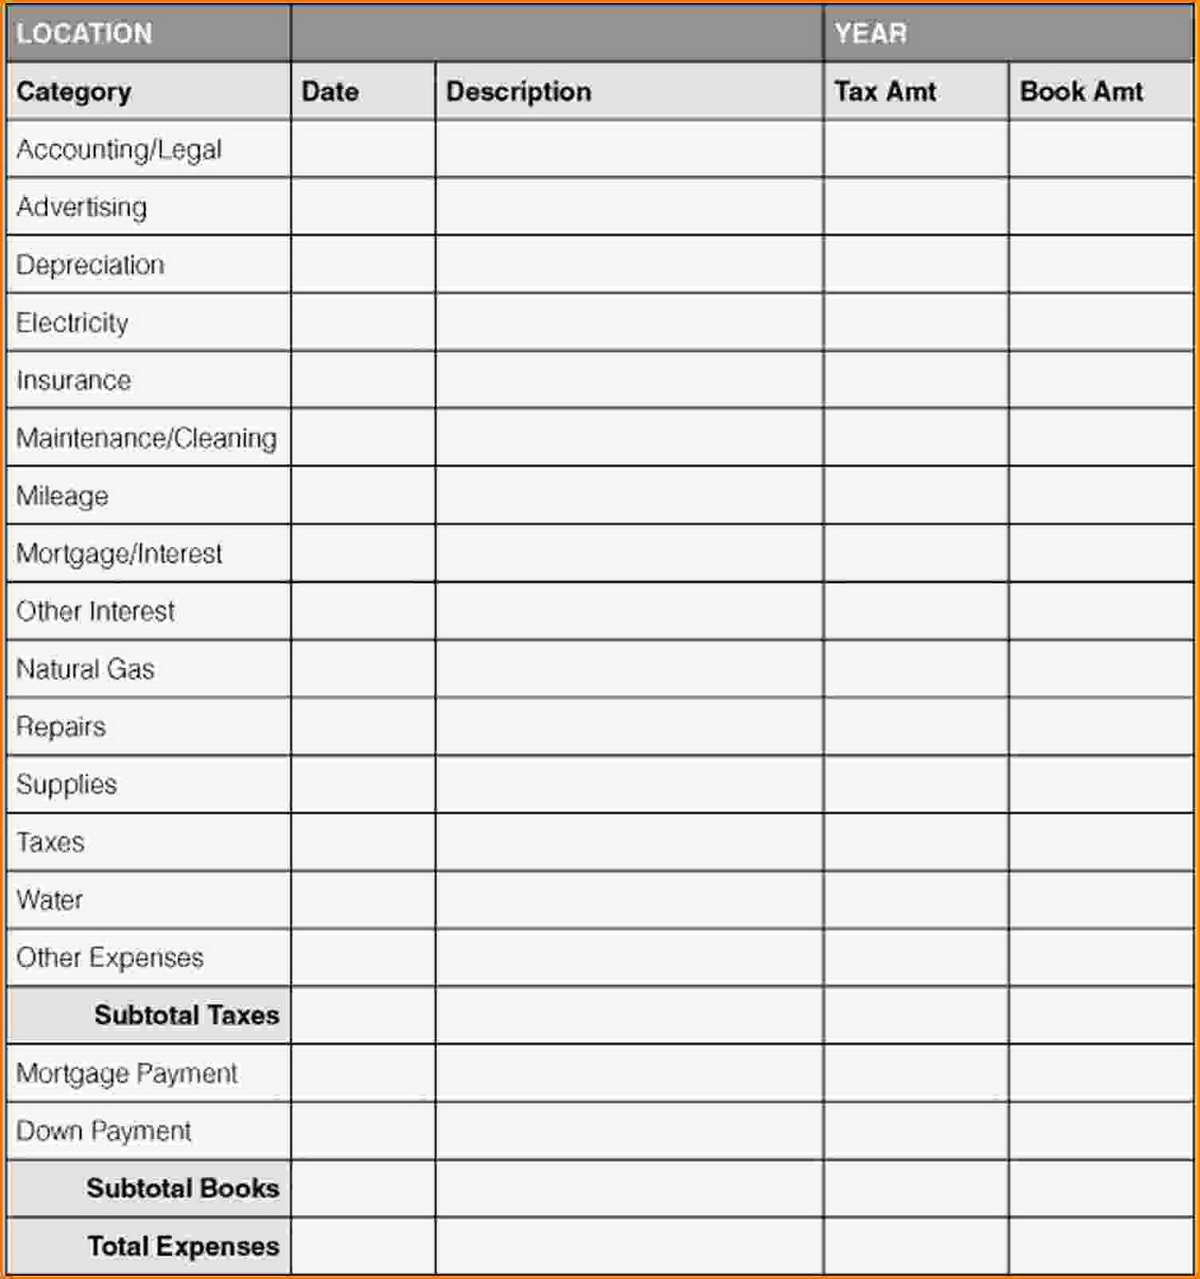 Business Expense Tracking Spreadsheet With Small Business Expenses For Small Business Expense Spreadsheet Template